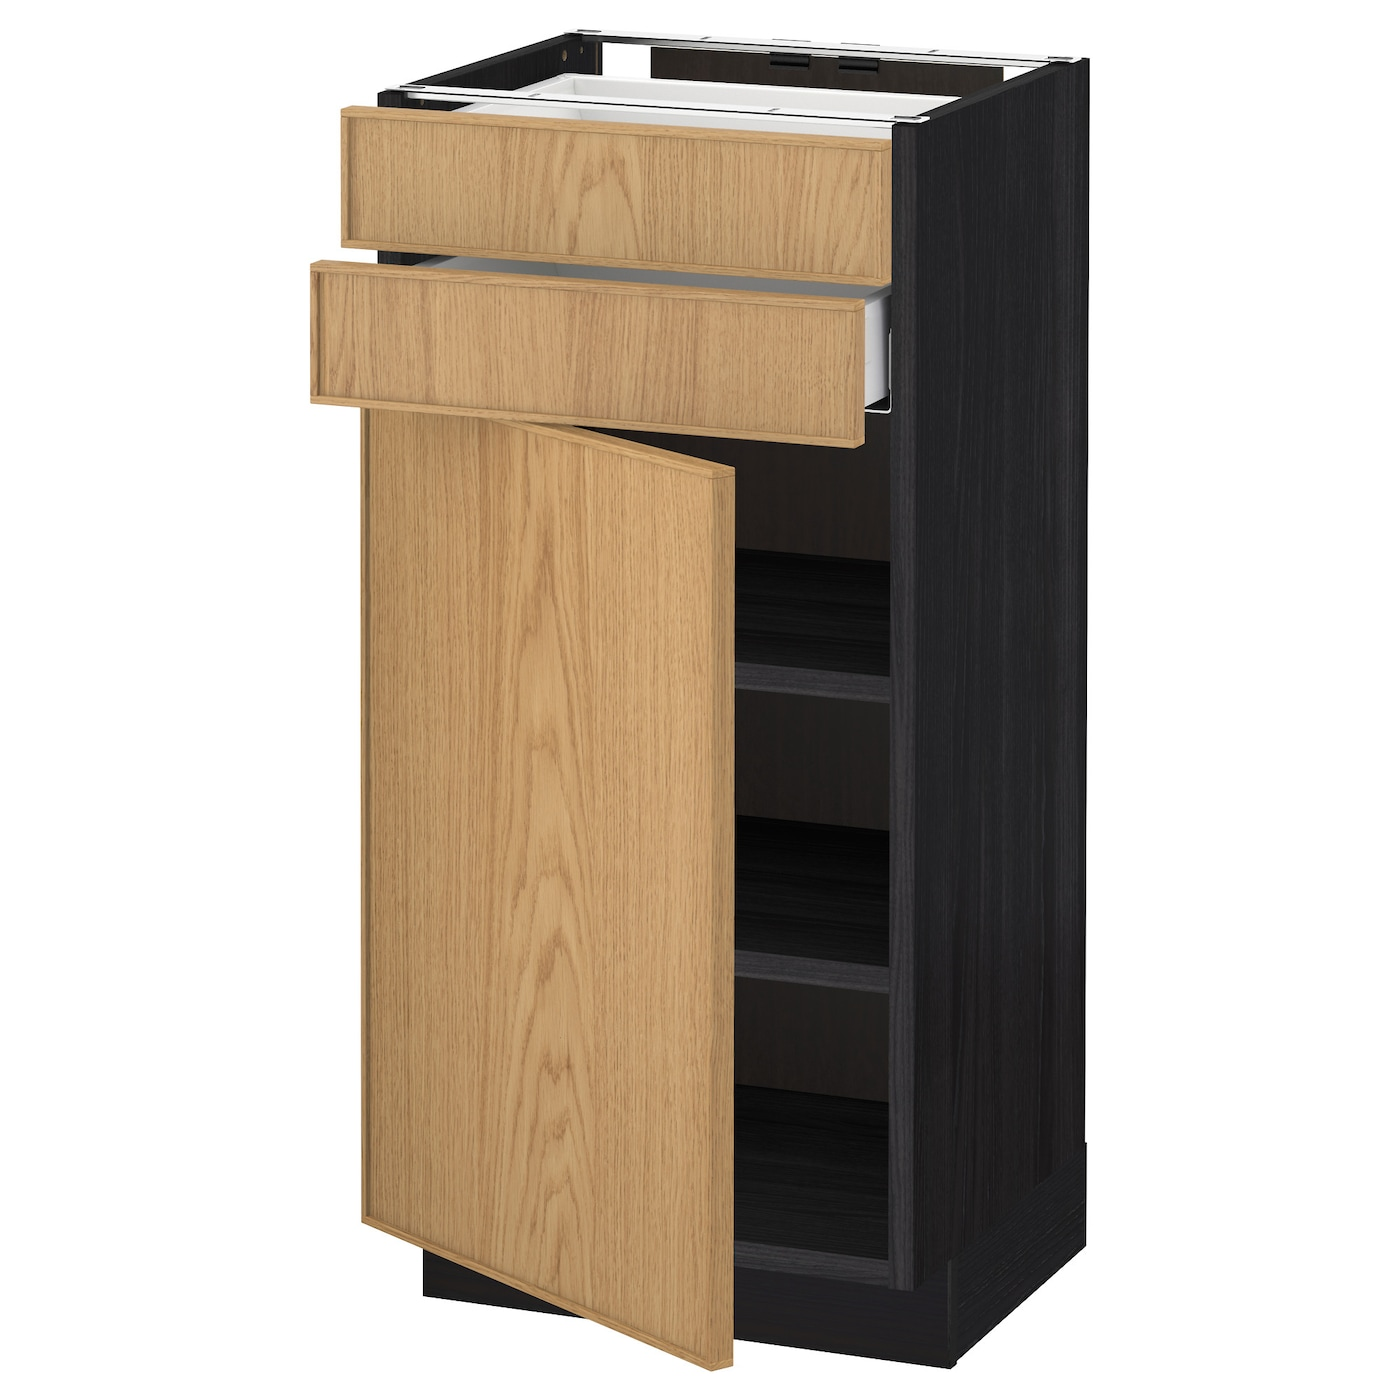 ikea oak kitchen cabinets metod maximera base cabinet w door 2 drawers black ekestad 4585